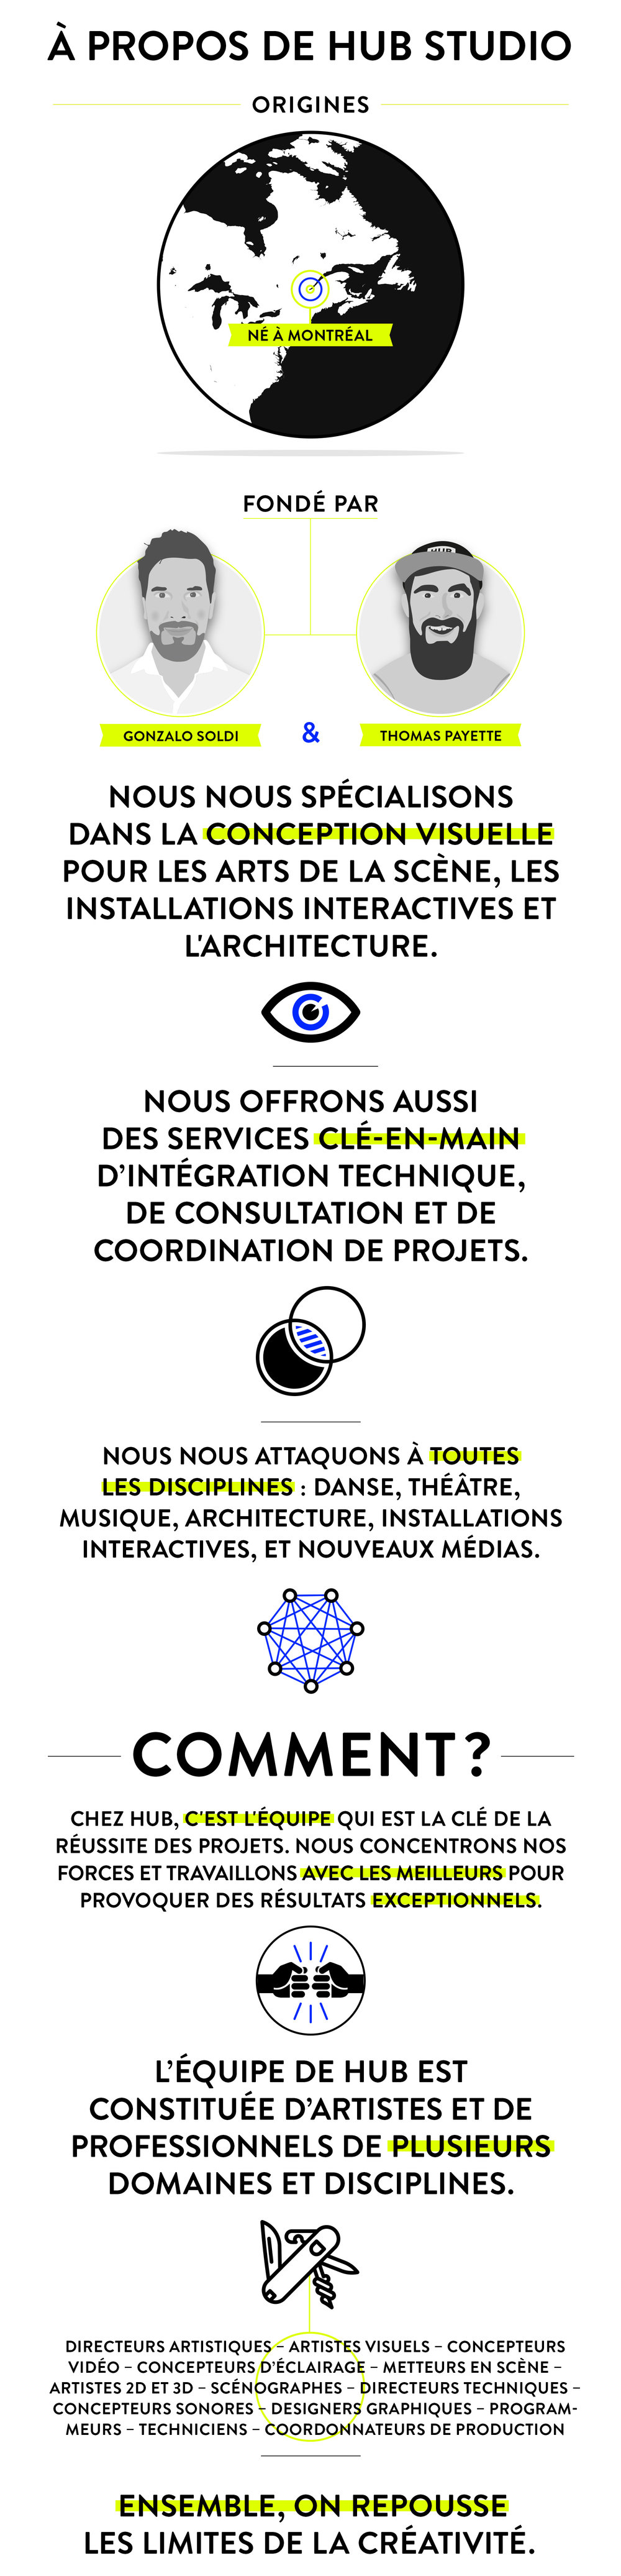 abouthub_FR